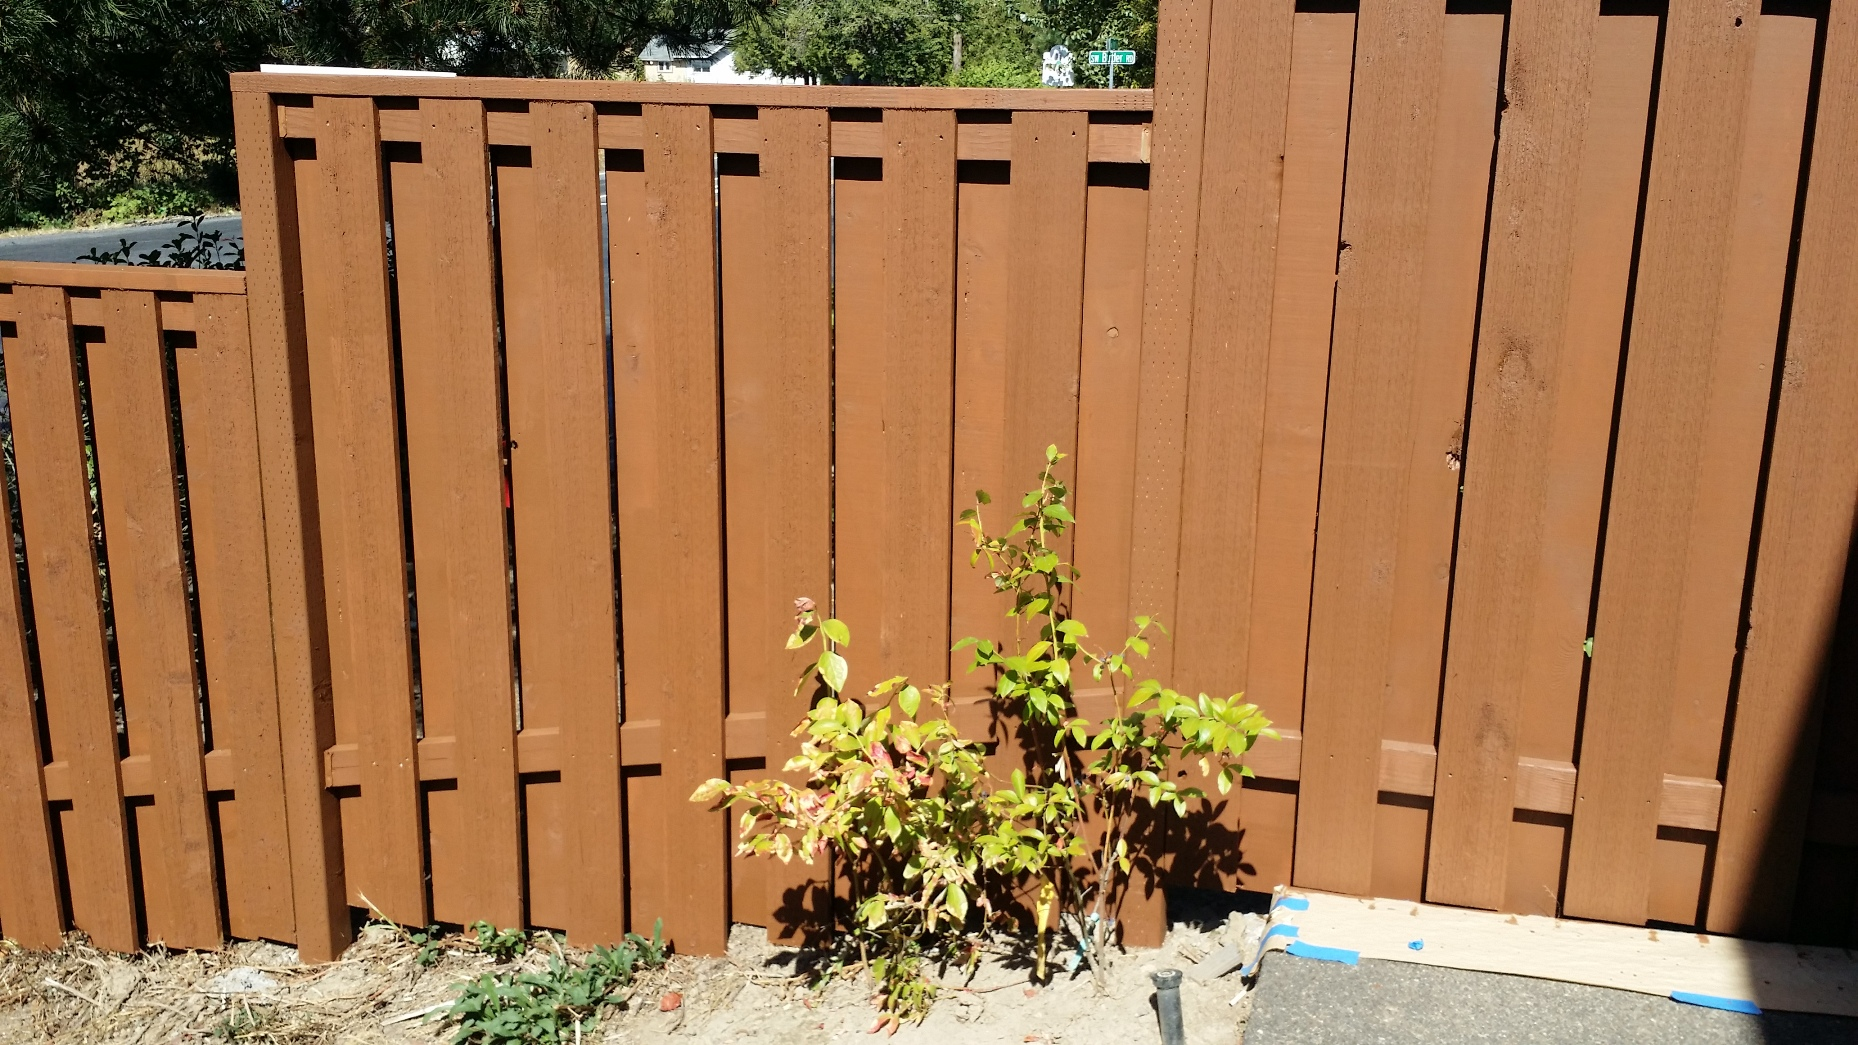 Garland fence repair quote, Garland fence contractor, Garland fencing company, Fence Repair Garland, Garland fencing repair